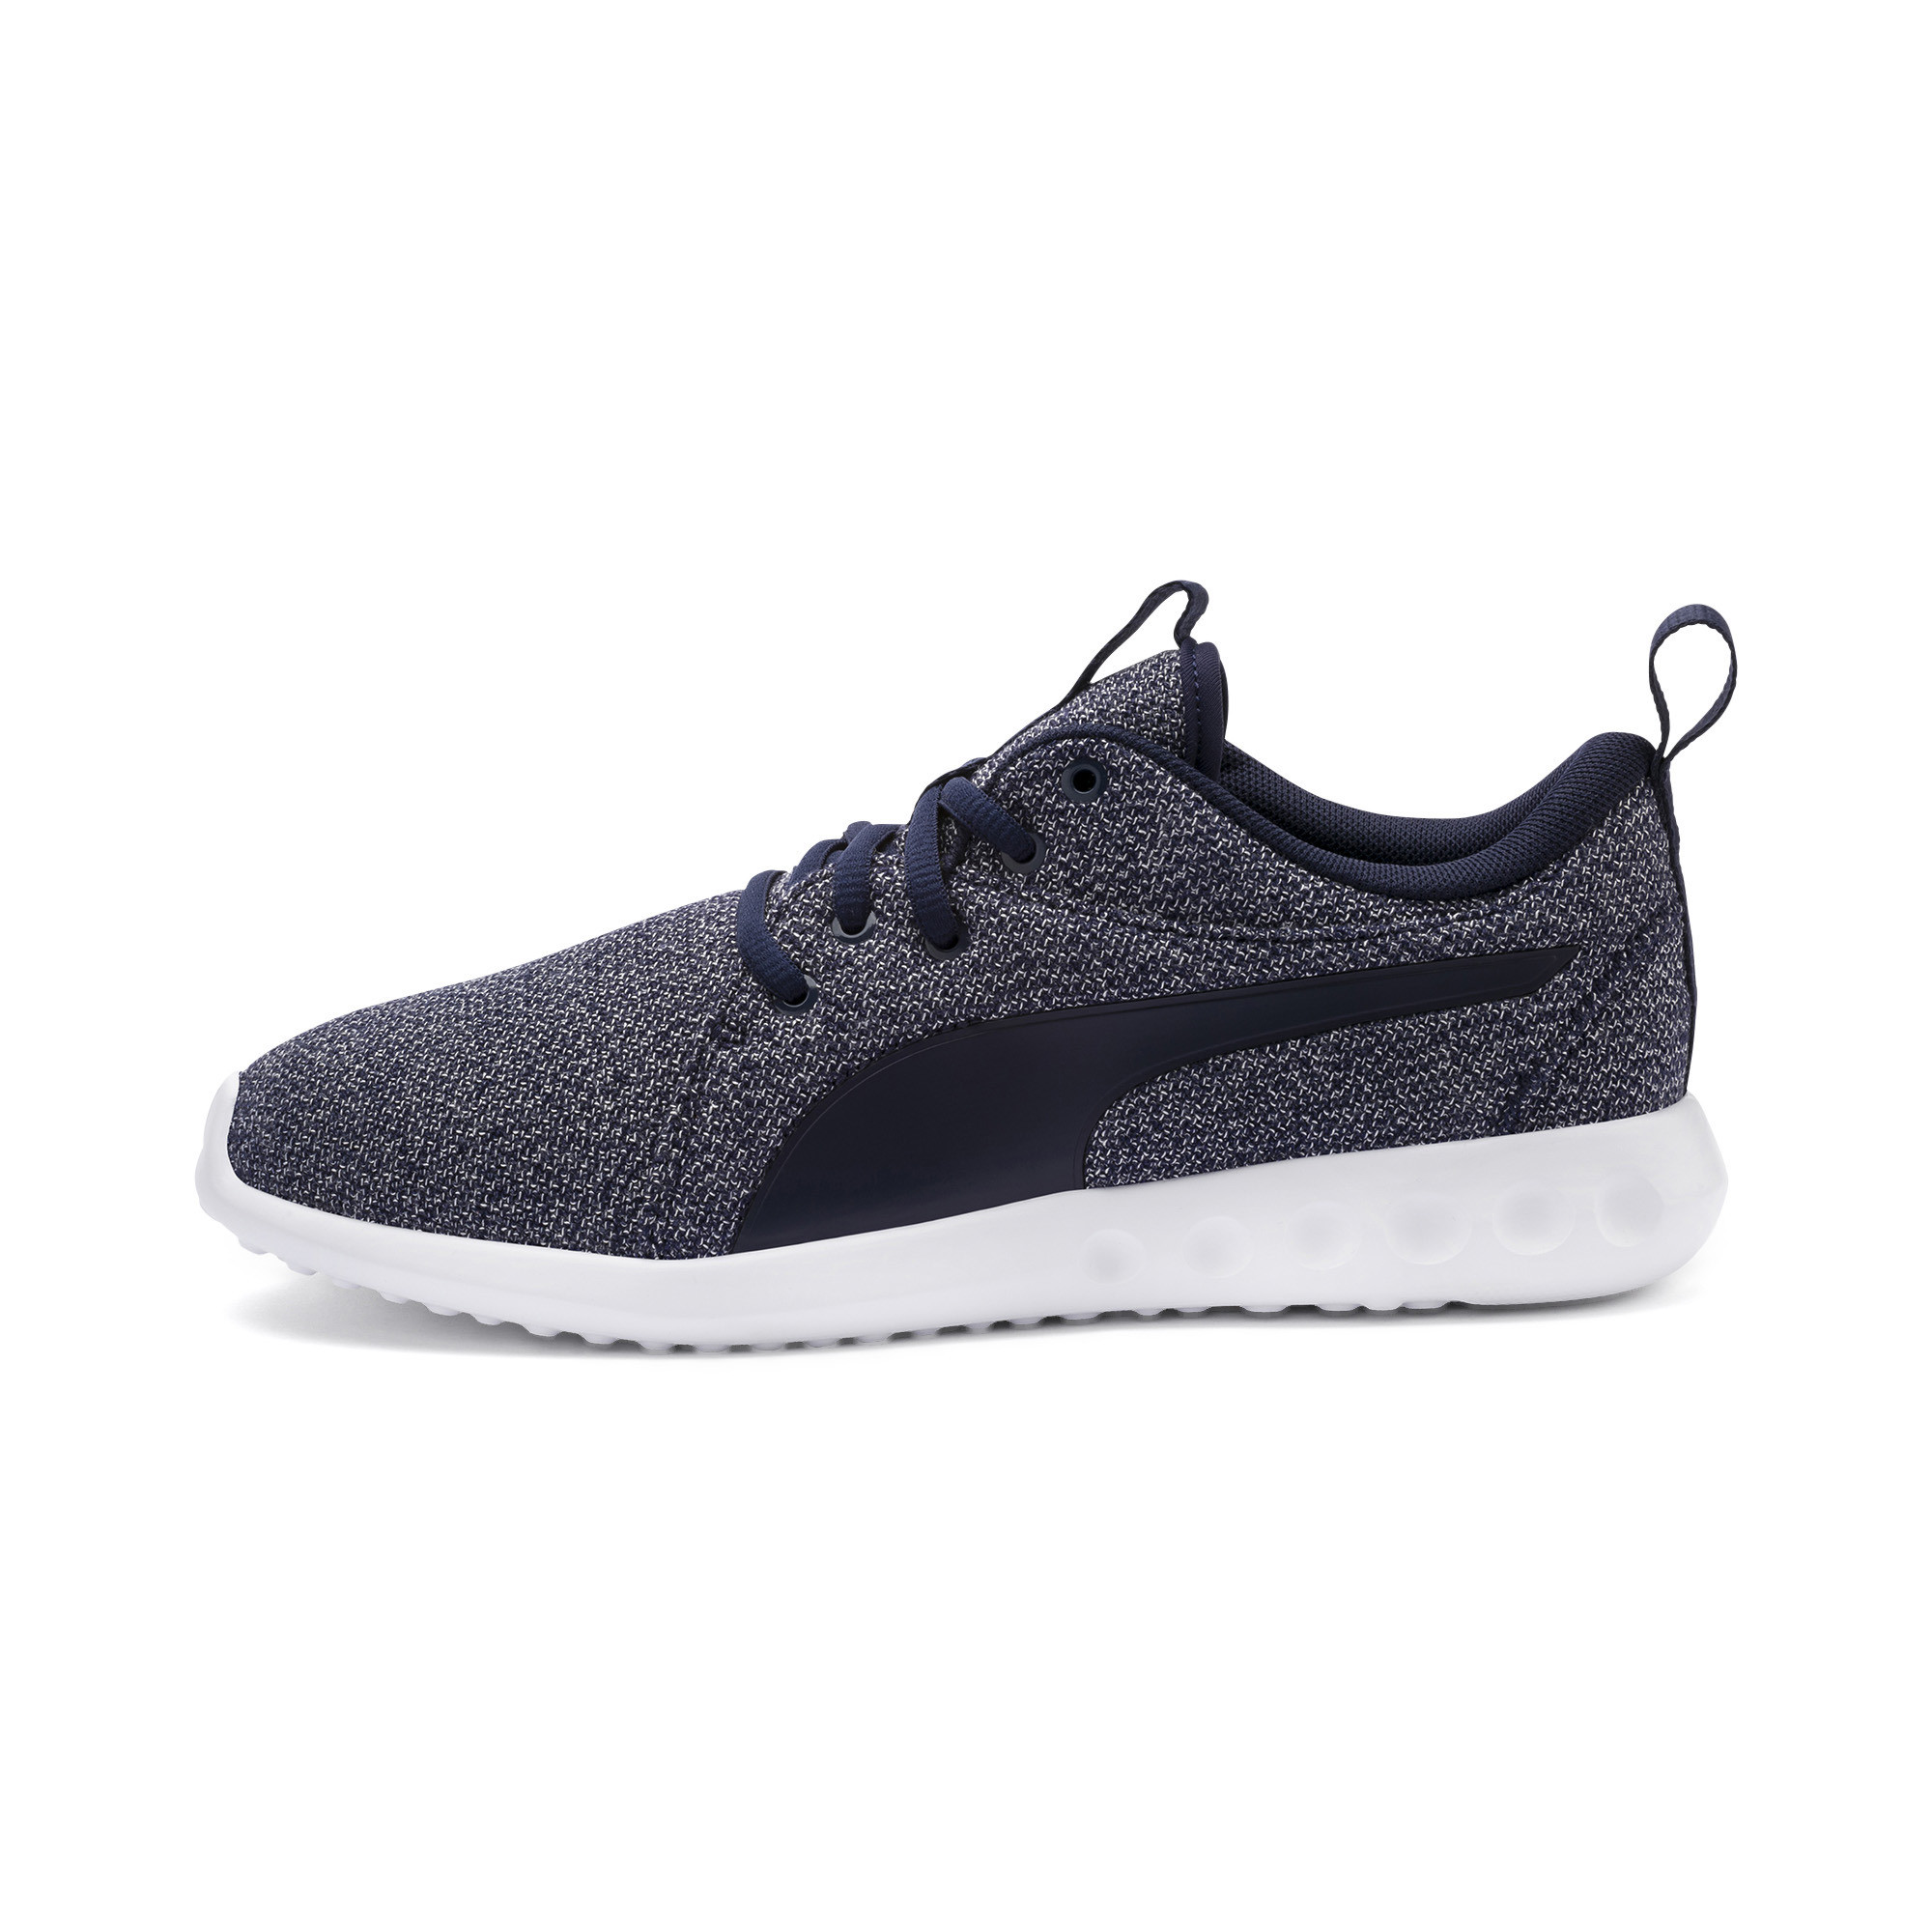 PUMA-Women-039-s-Carson-2-Knit-Running-Shoes thumbnail 29